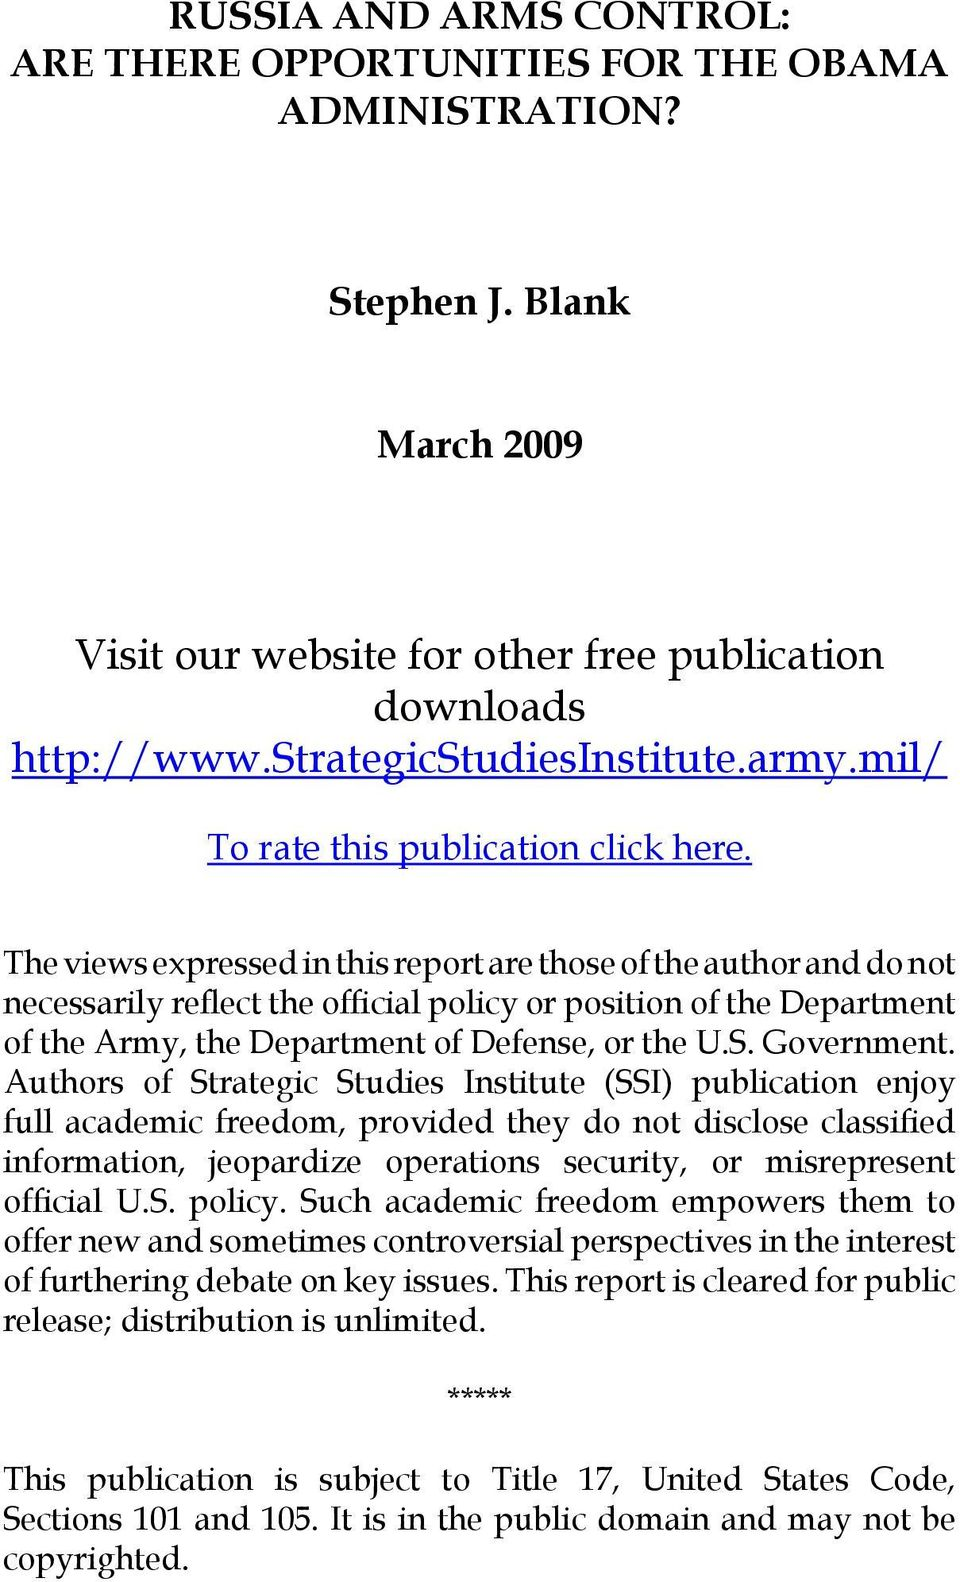 The views expressed in this report are those of the author and do not necessarily reflect the official policy or position of the Department of the Army, the Department of Defense, or the U.S.